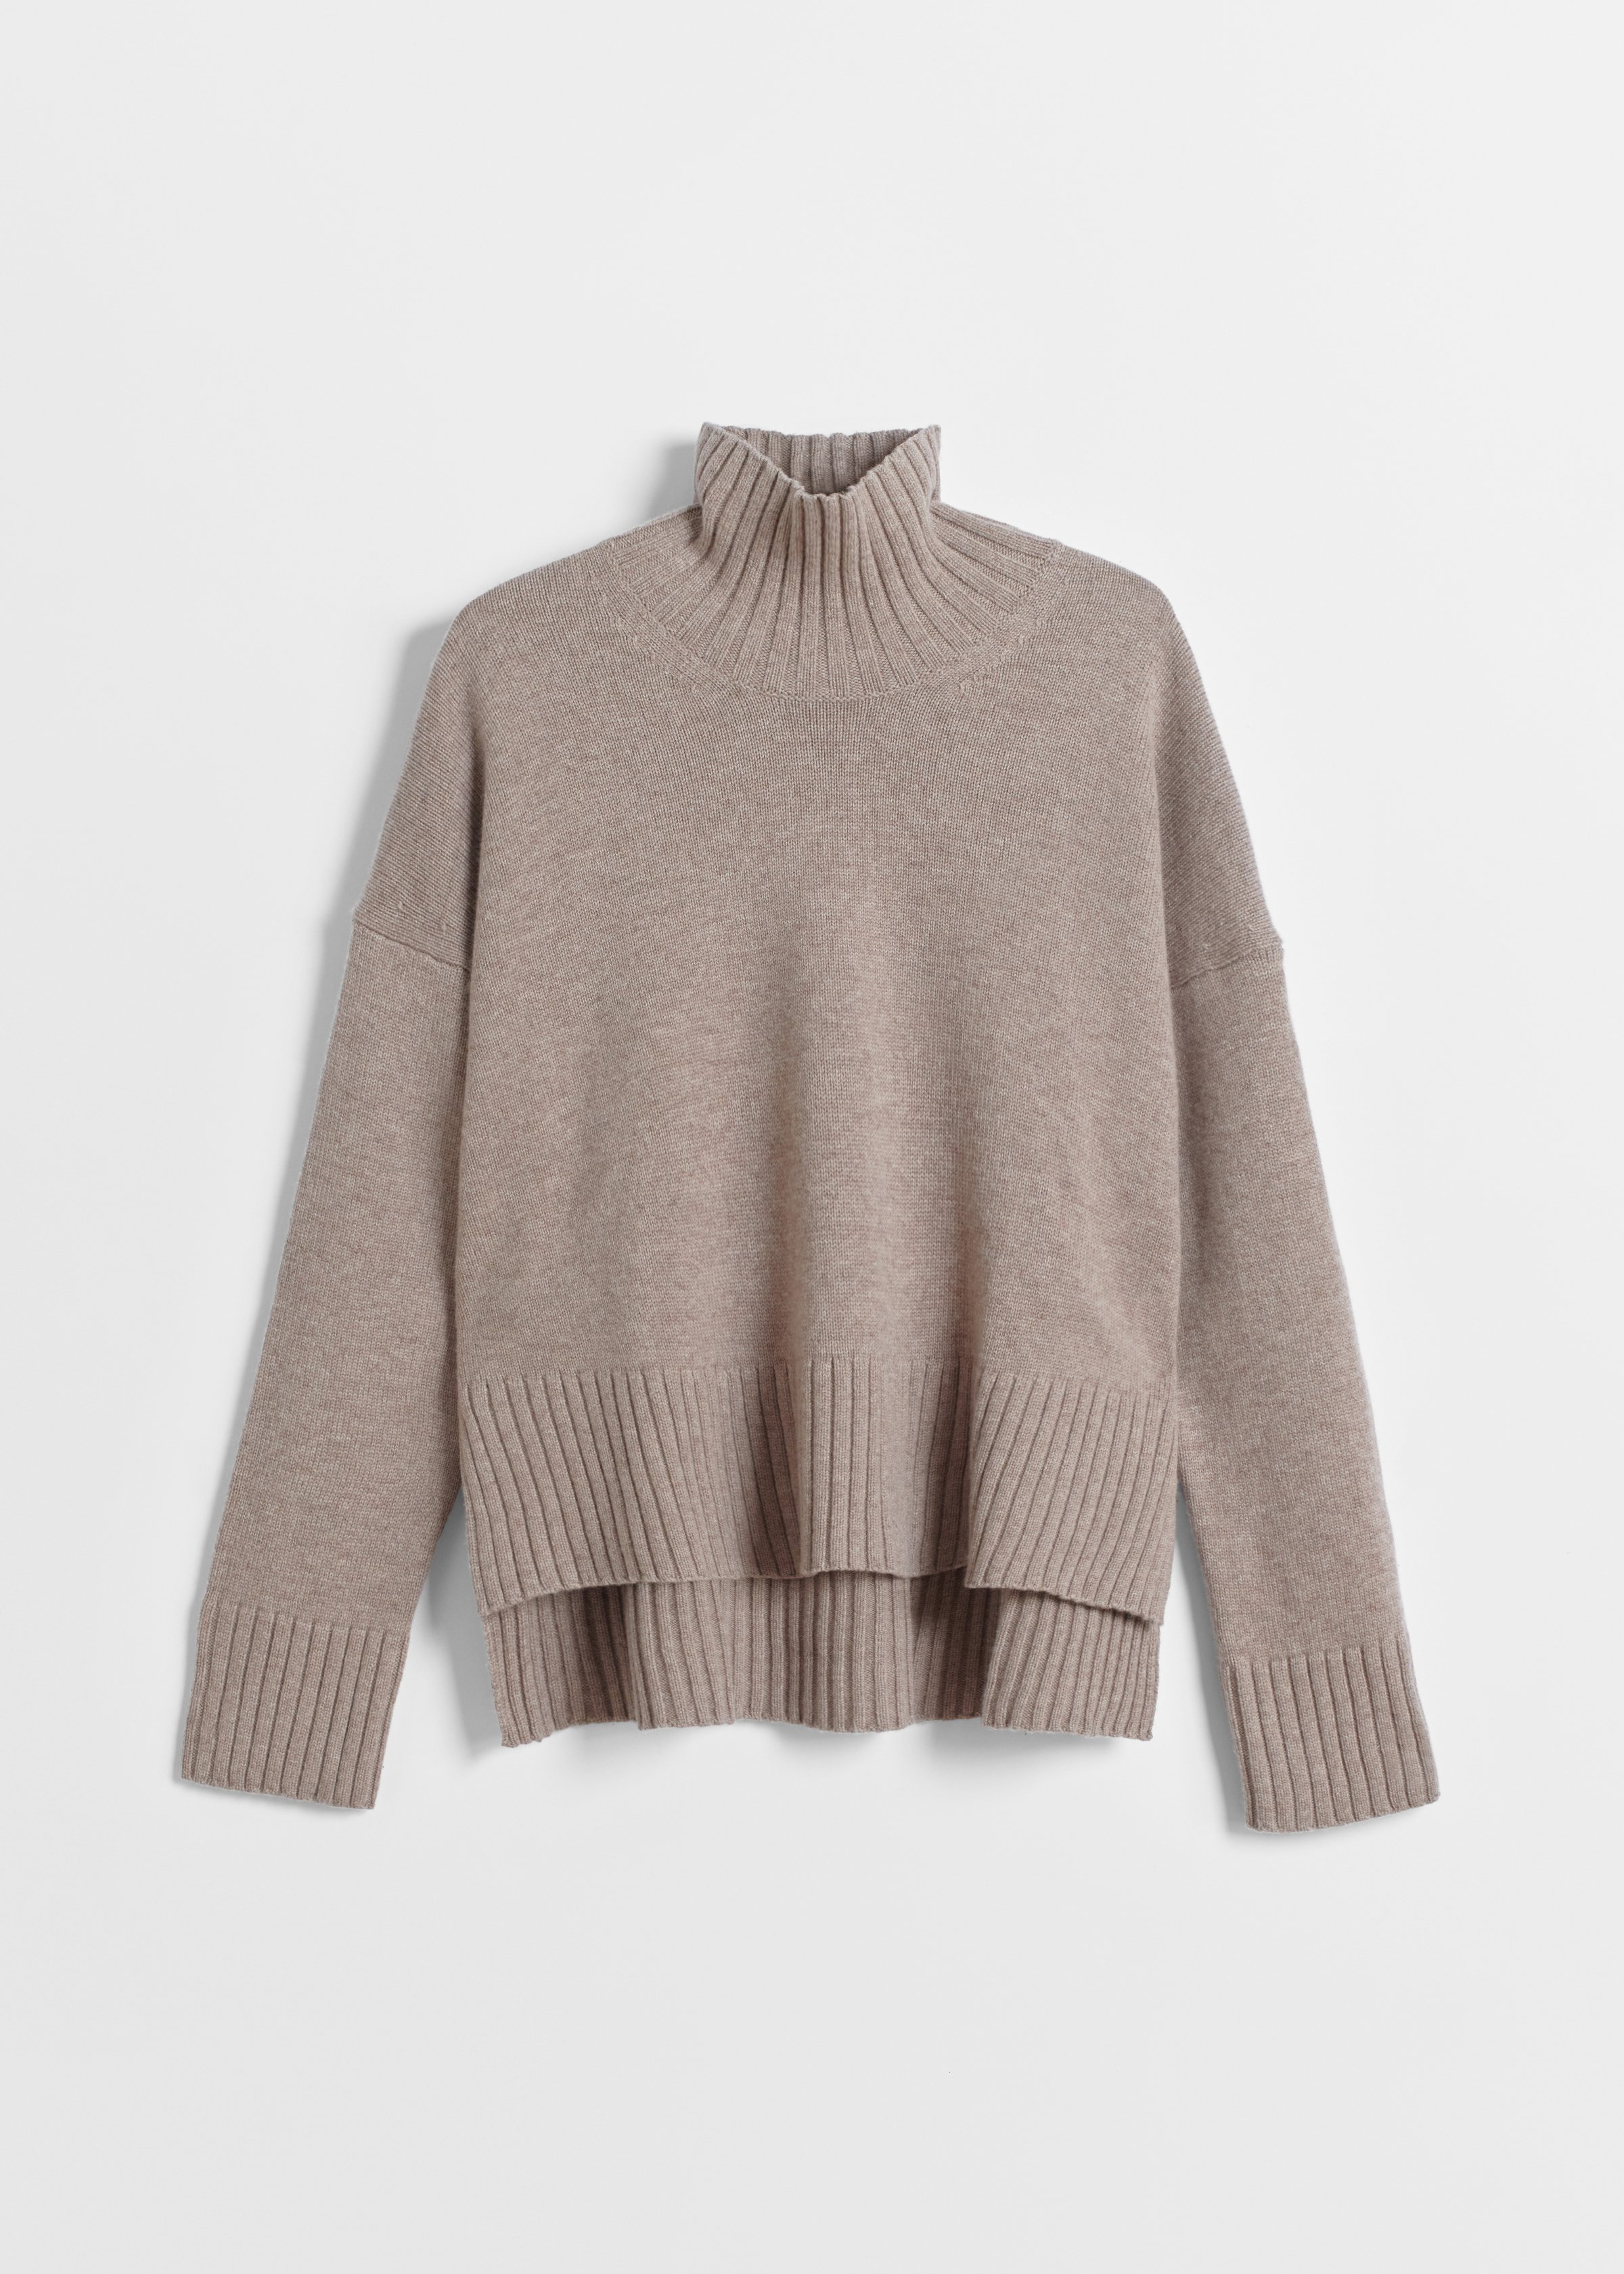 High Neck Sweater in Wool Cashmere - Brown in Taupe by Co Collections